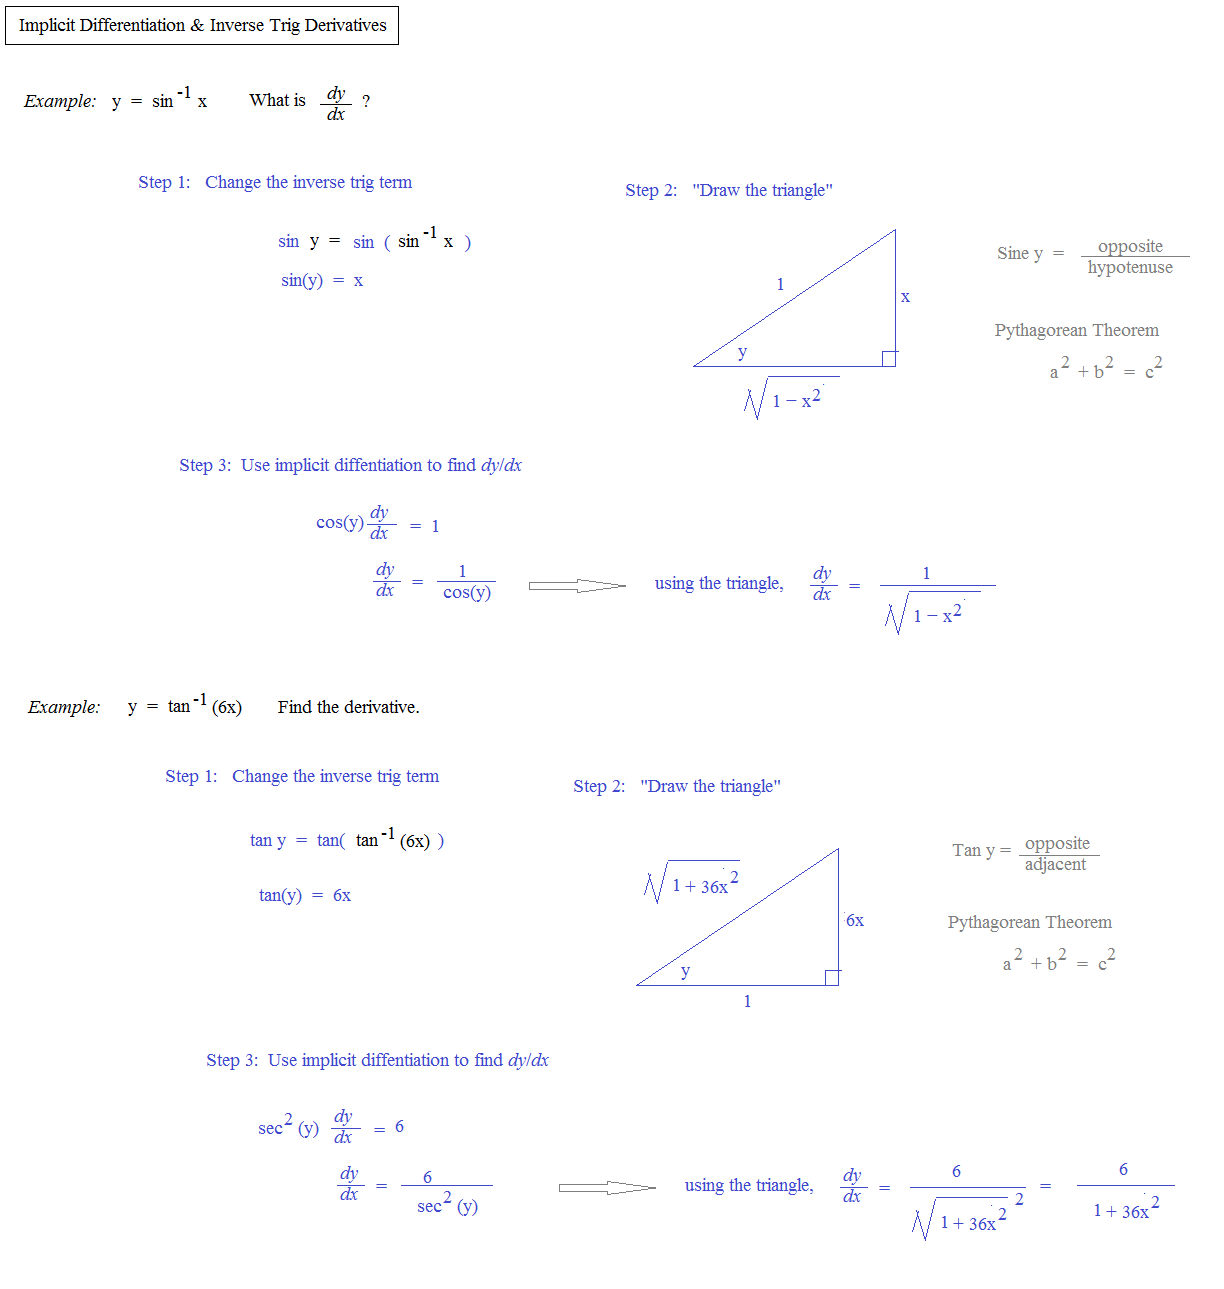 worksheet Implicit Differentiation Worksheet With Answers math plane implicit differentiation notes and examples inverse trig derivatives